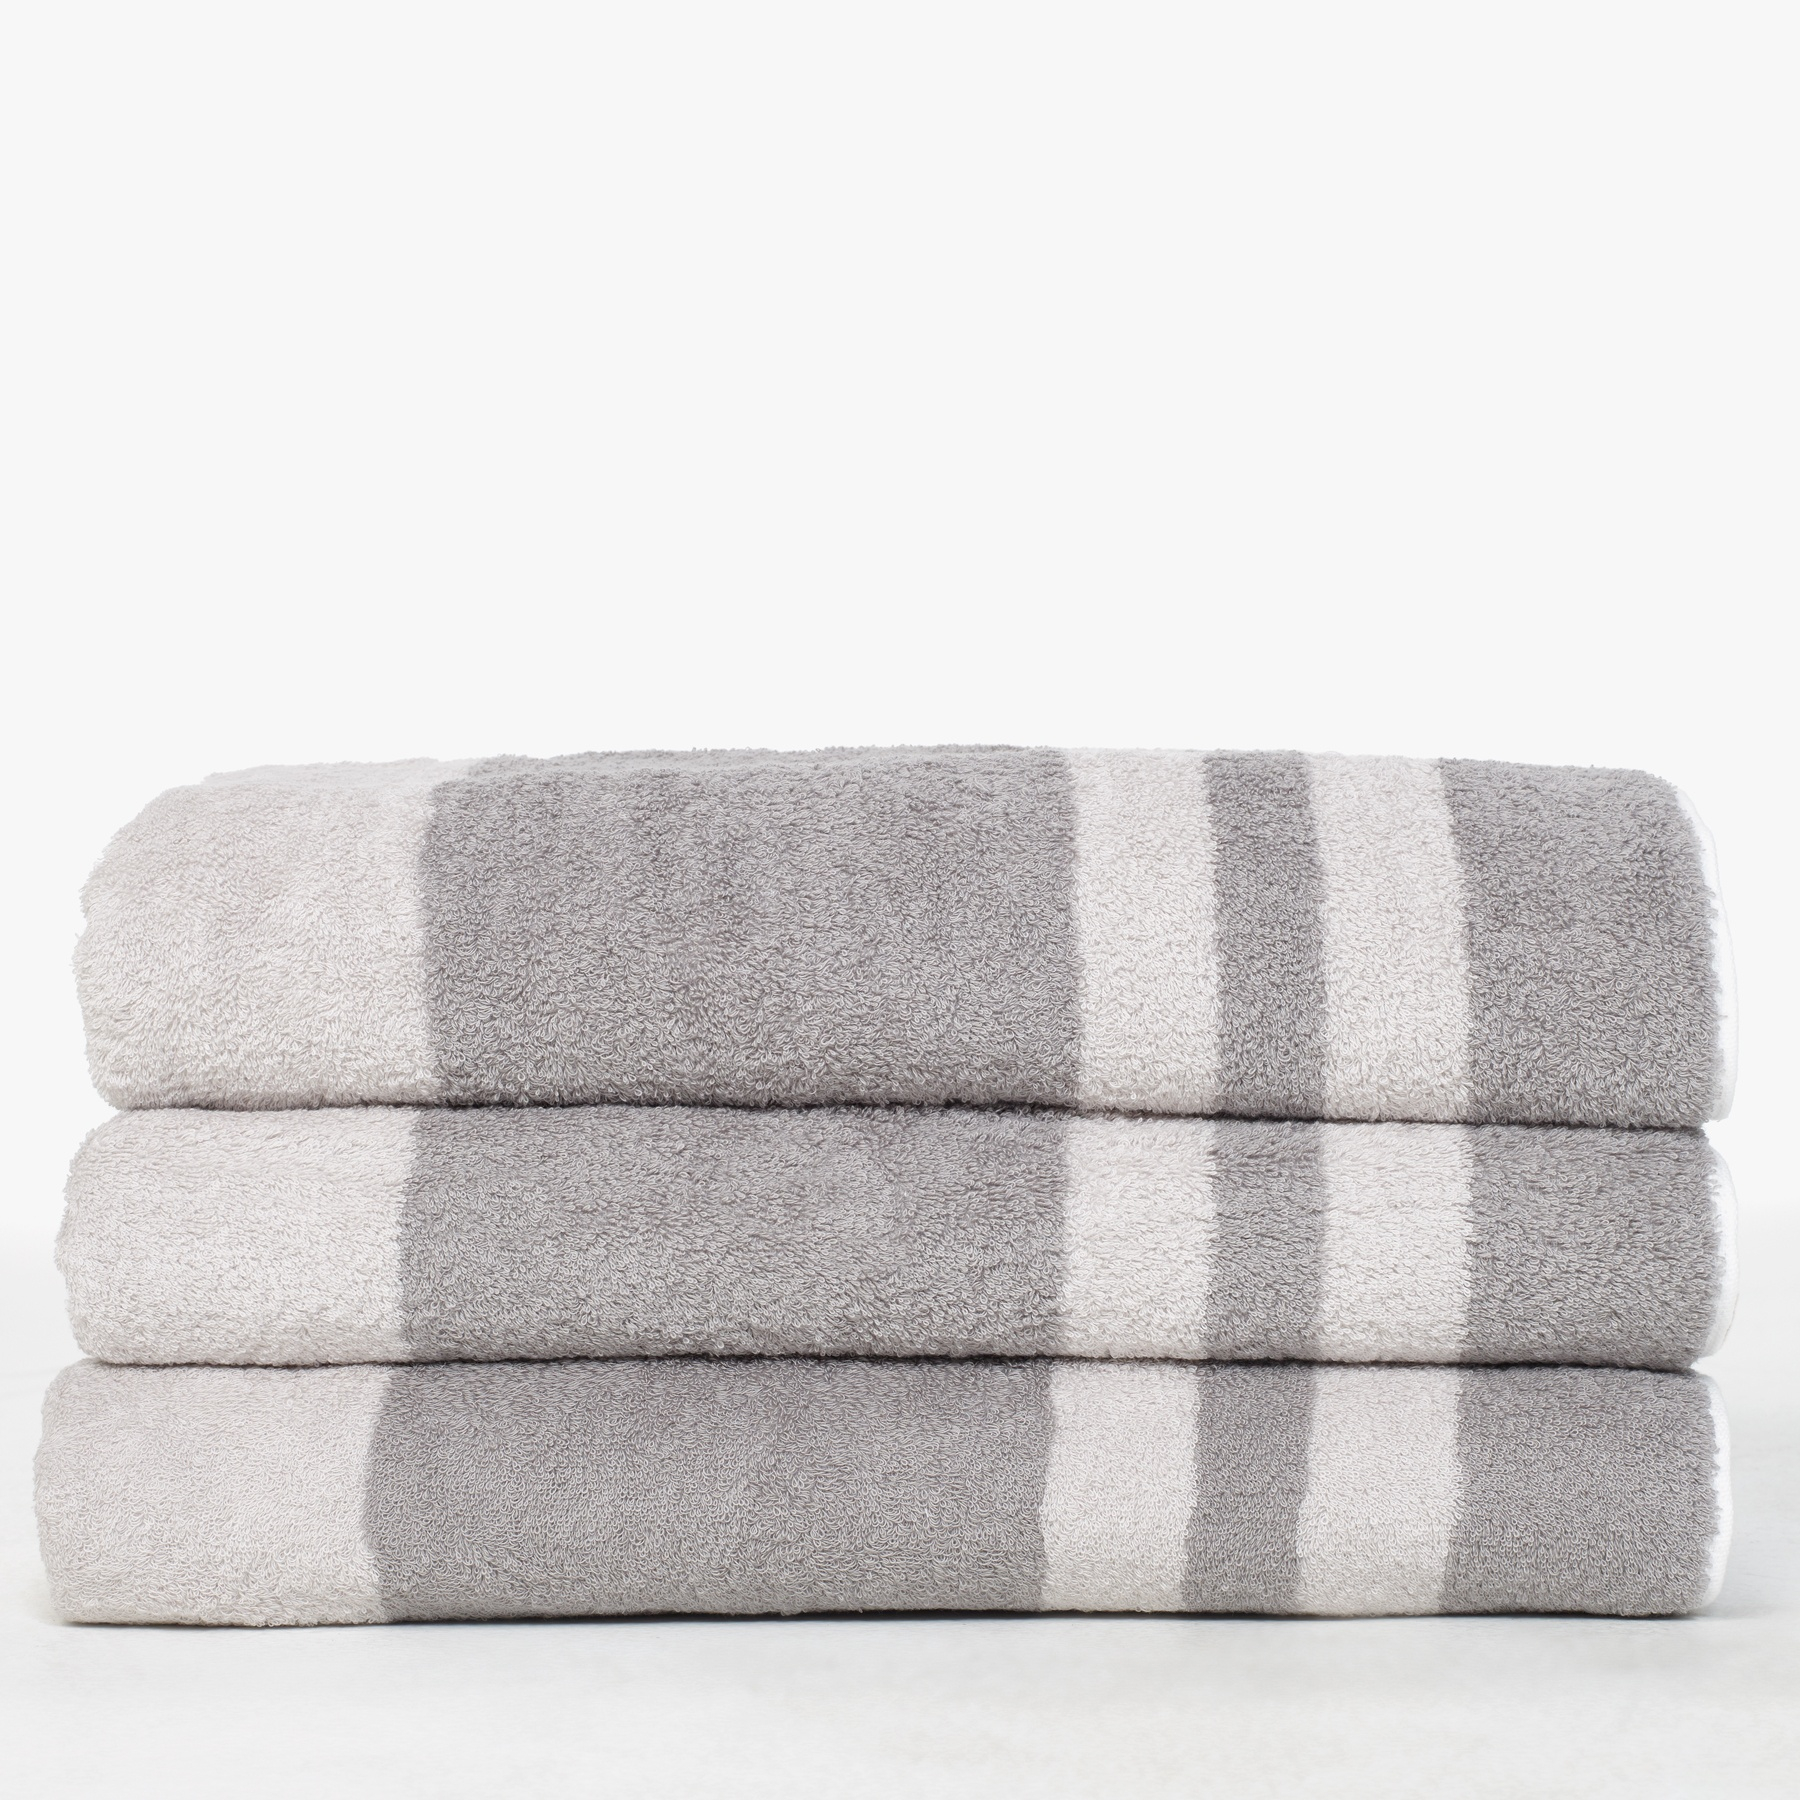 lyst james perse wide stripe beach towel in gray for men. Black Bedroom Furniture Sets. Home Design Ideas